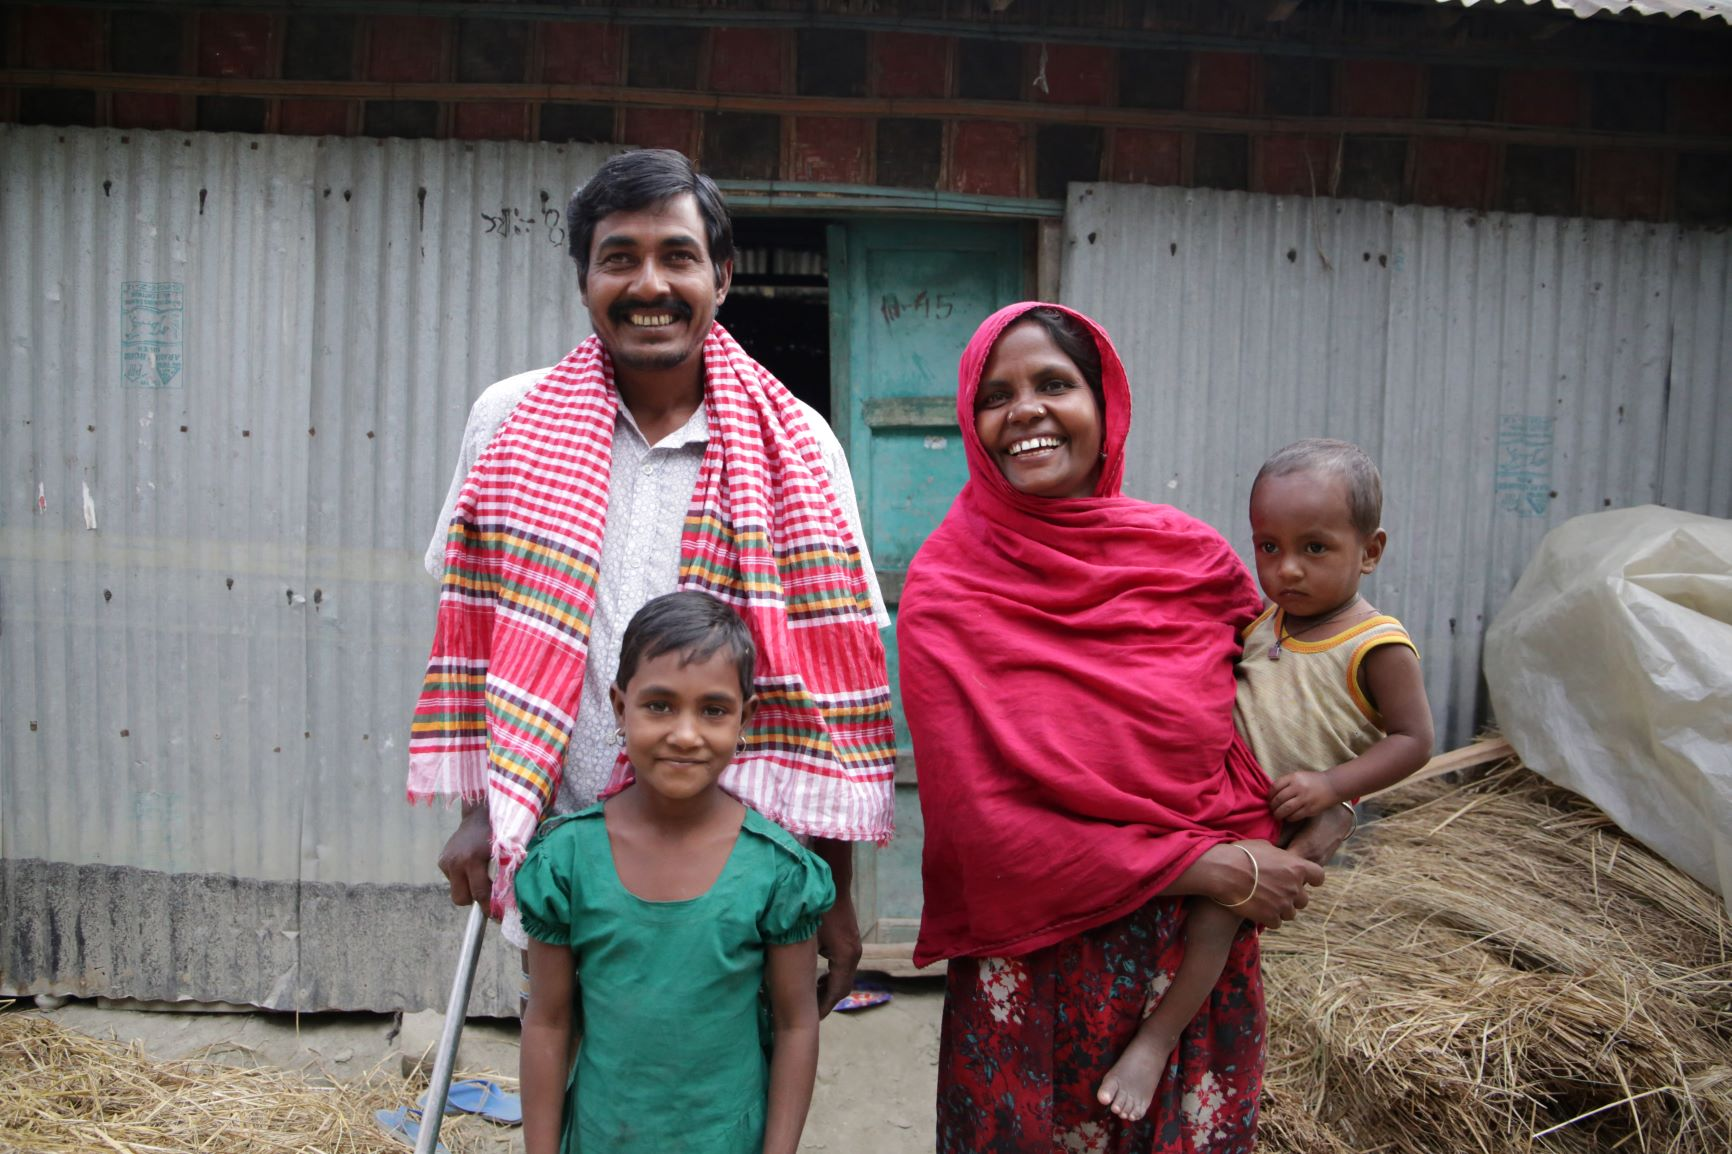 Behula, her husband, and 2 of their children outside their repaired home